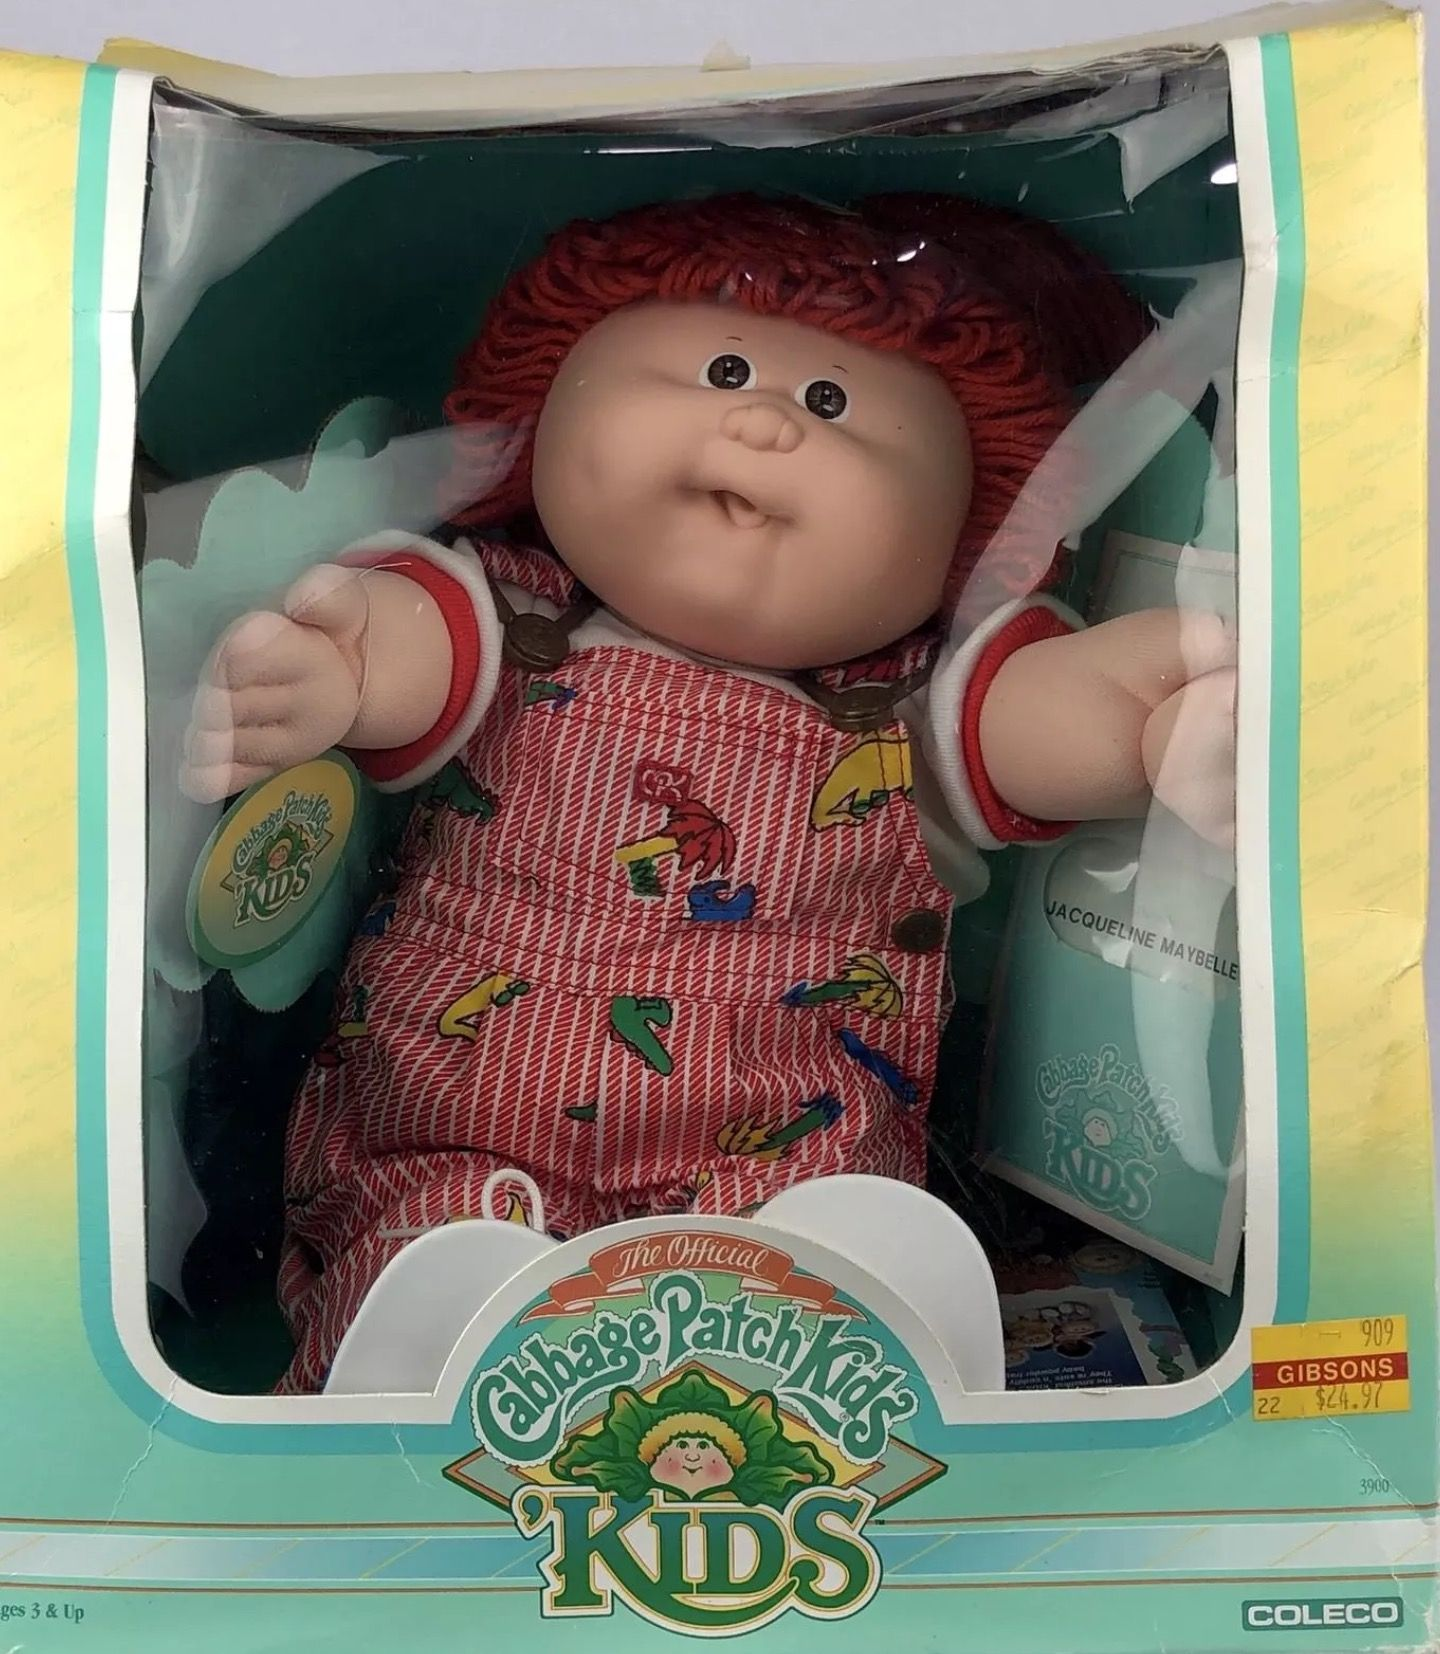 Pin By Arlethia English On Cabbage Patch Kids Cabbage Patch Dolls Cabbage Patch Kids Cuddly Doll